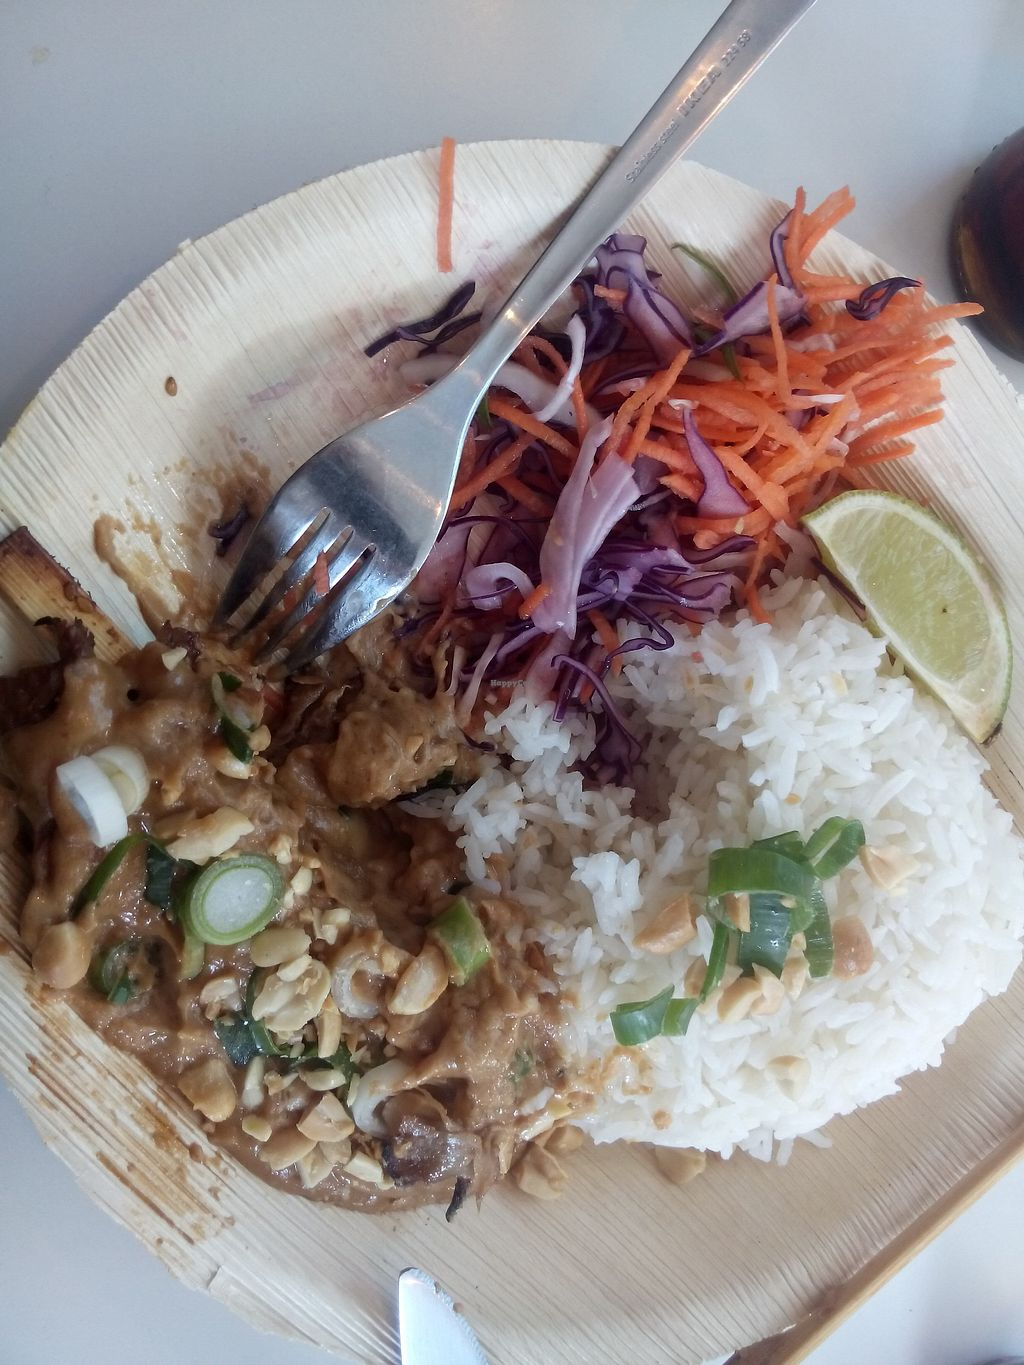 """Photo of V-Box  by <a href=""""/members/profile/RavenW"""">RavenW</a> <br/>Satay with peanut sauce and rice <br/> February 1, 2018  - <a href='/contact/abuse/image/94891/353674'>Report</a>"""